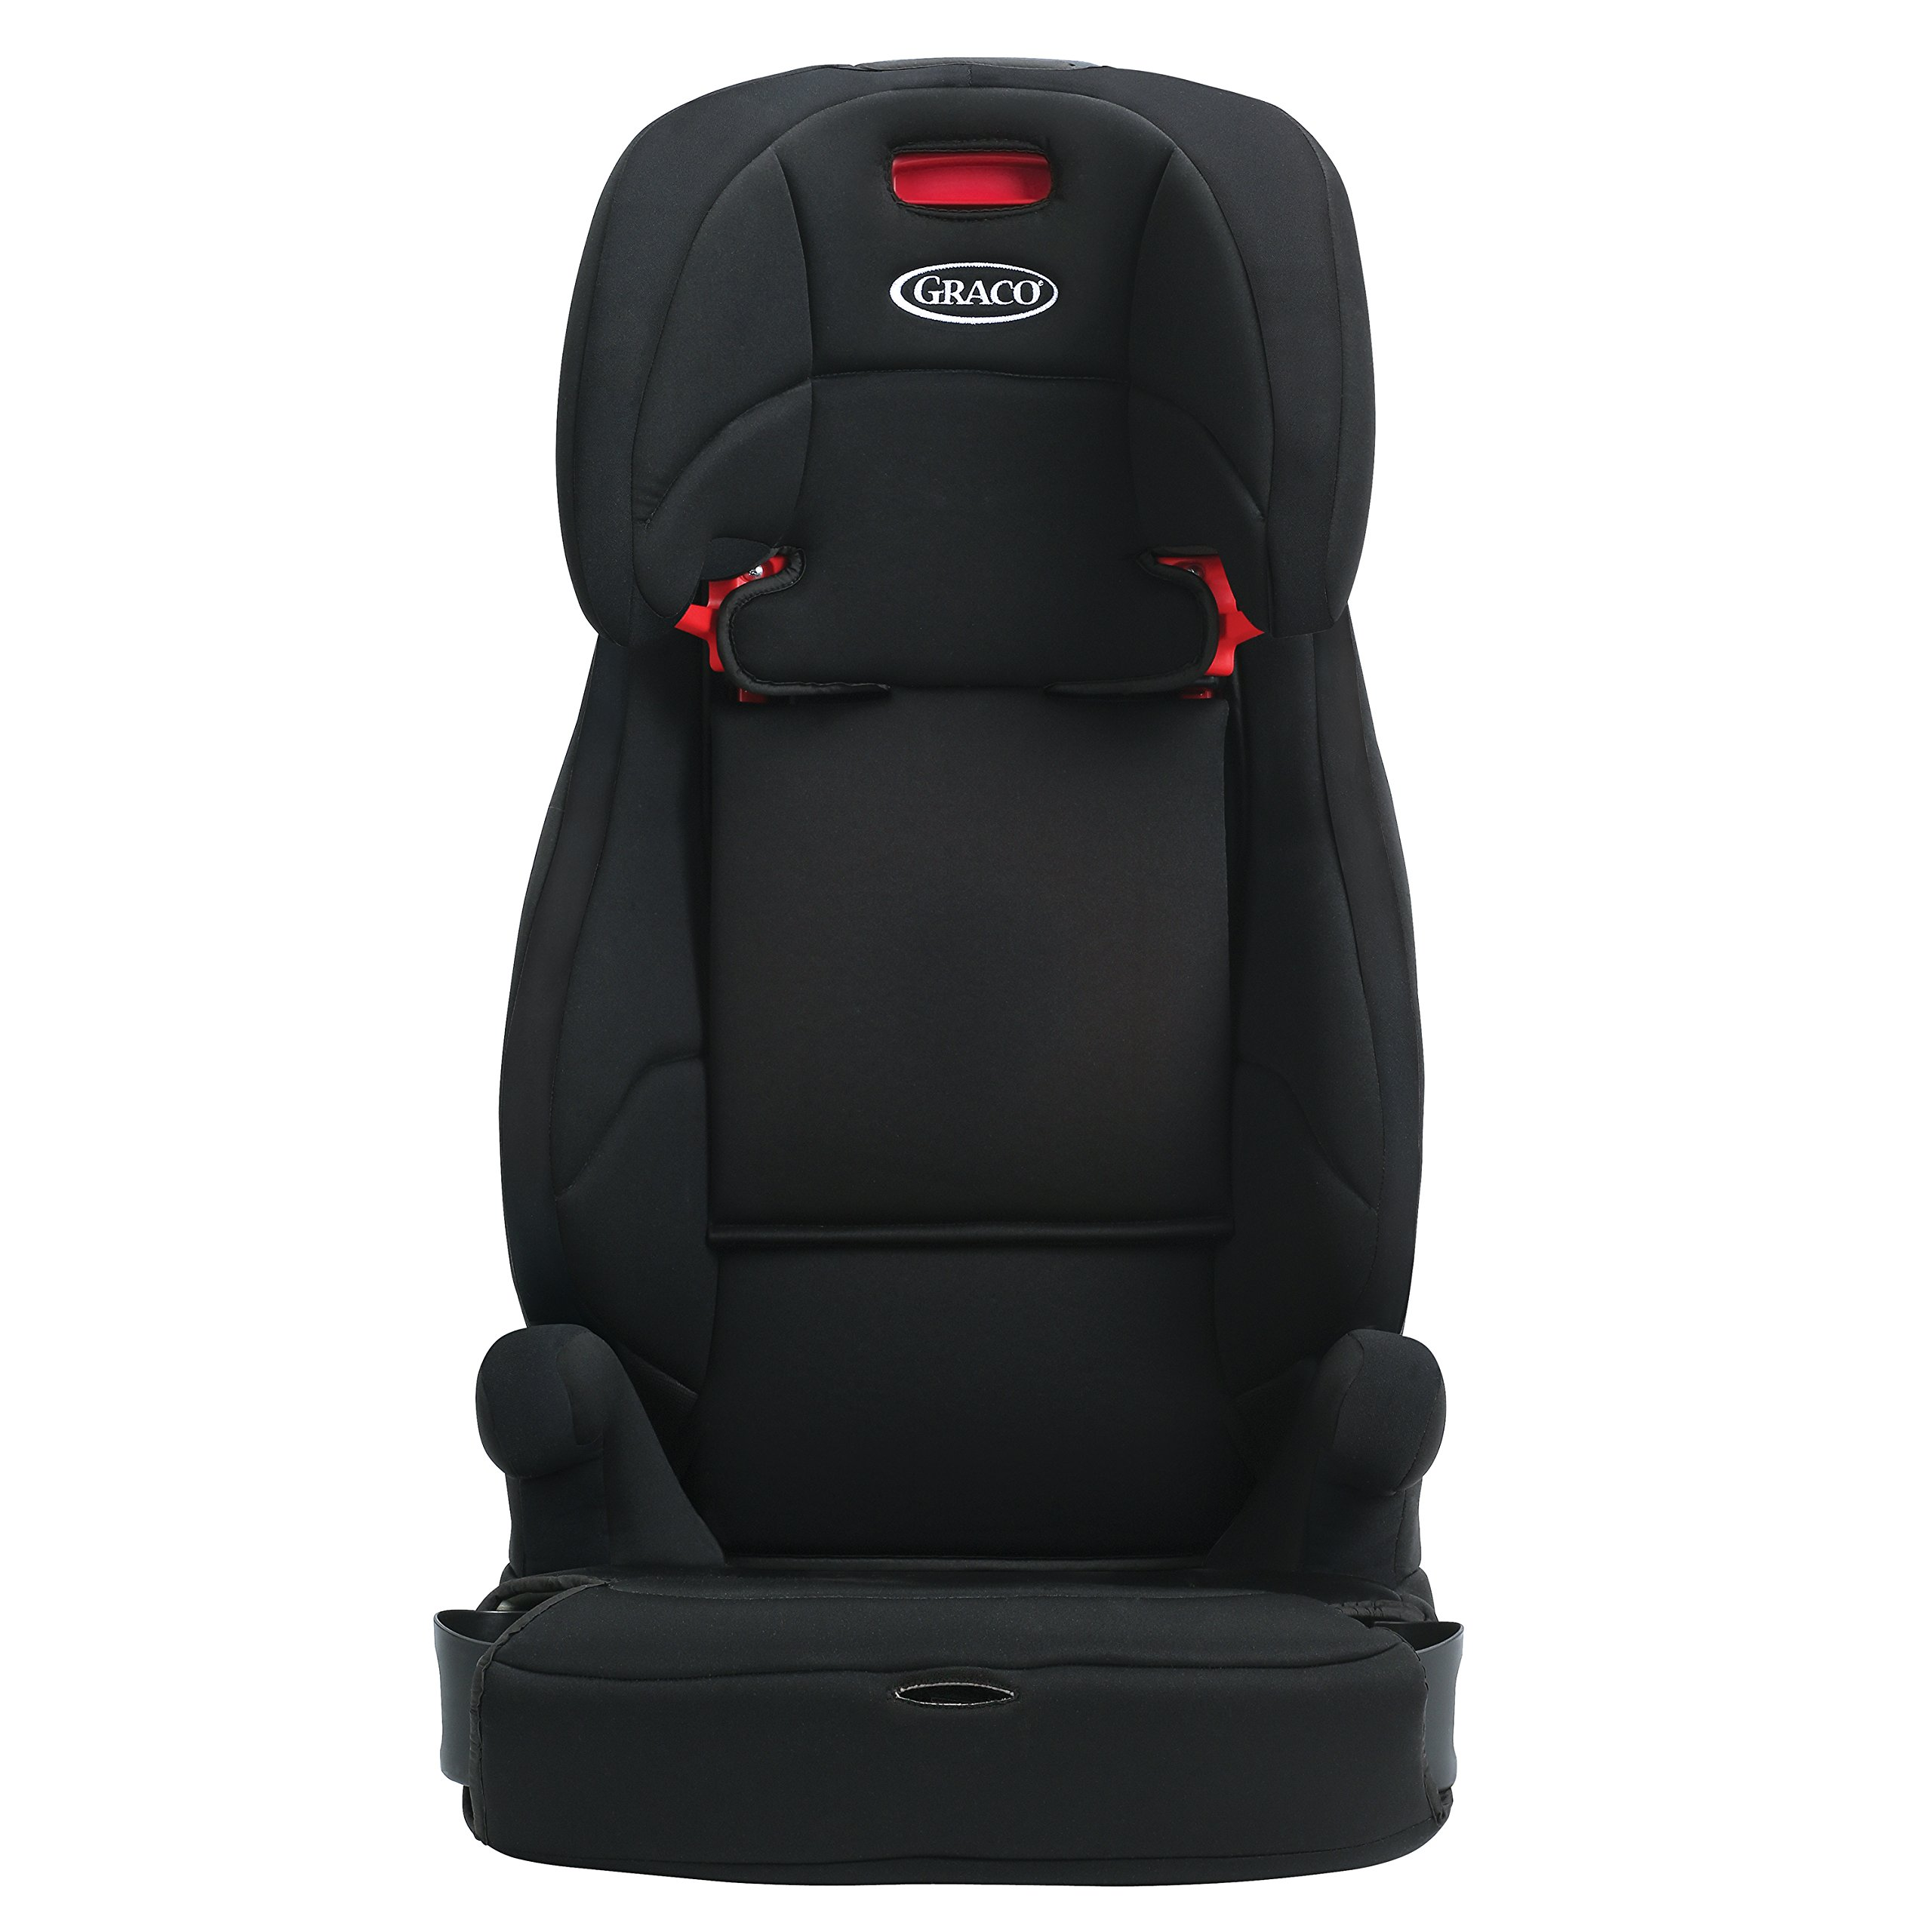 Graco Tranzitions 3-in-1 Harness Booster Car Seat, Proof by Graco (Image #3)